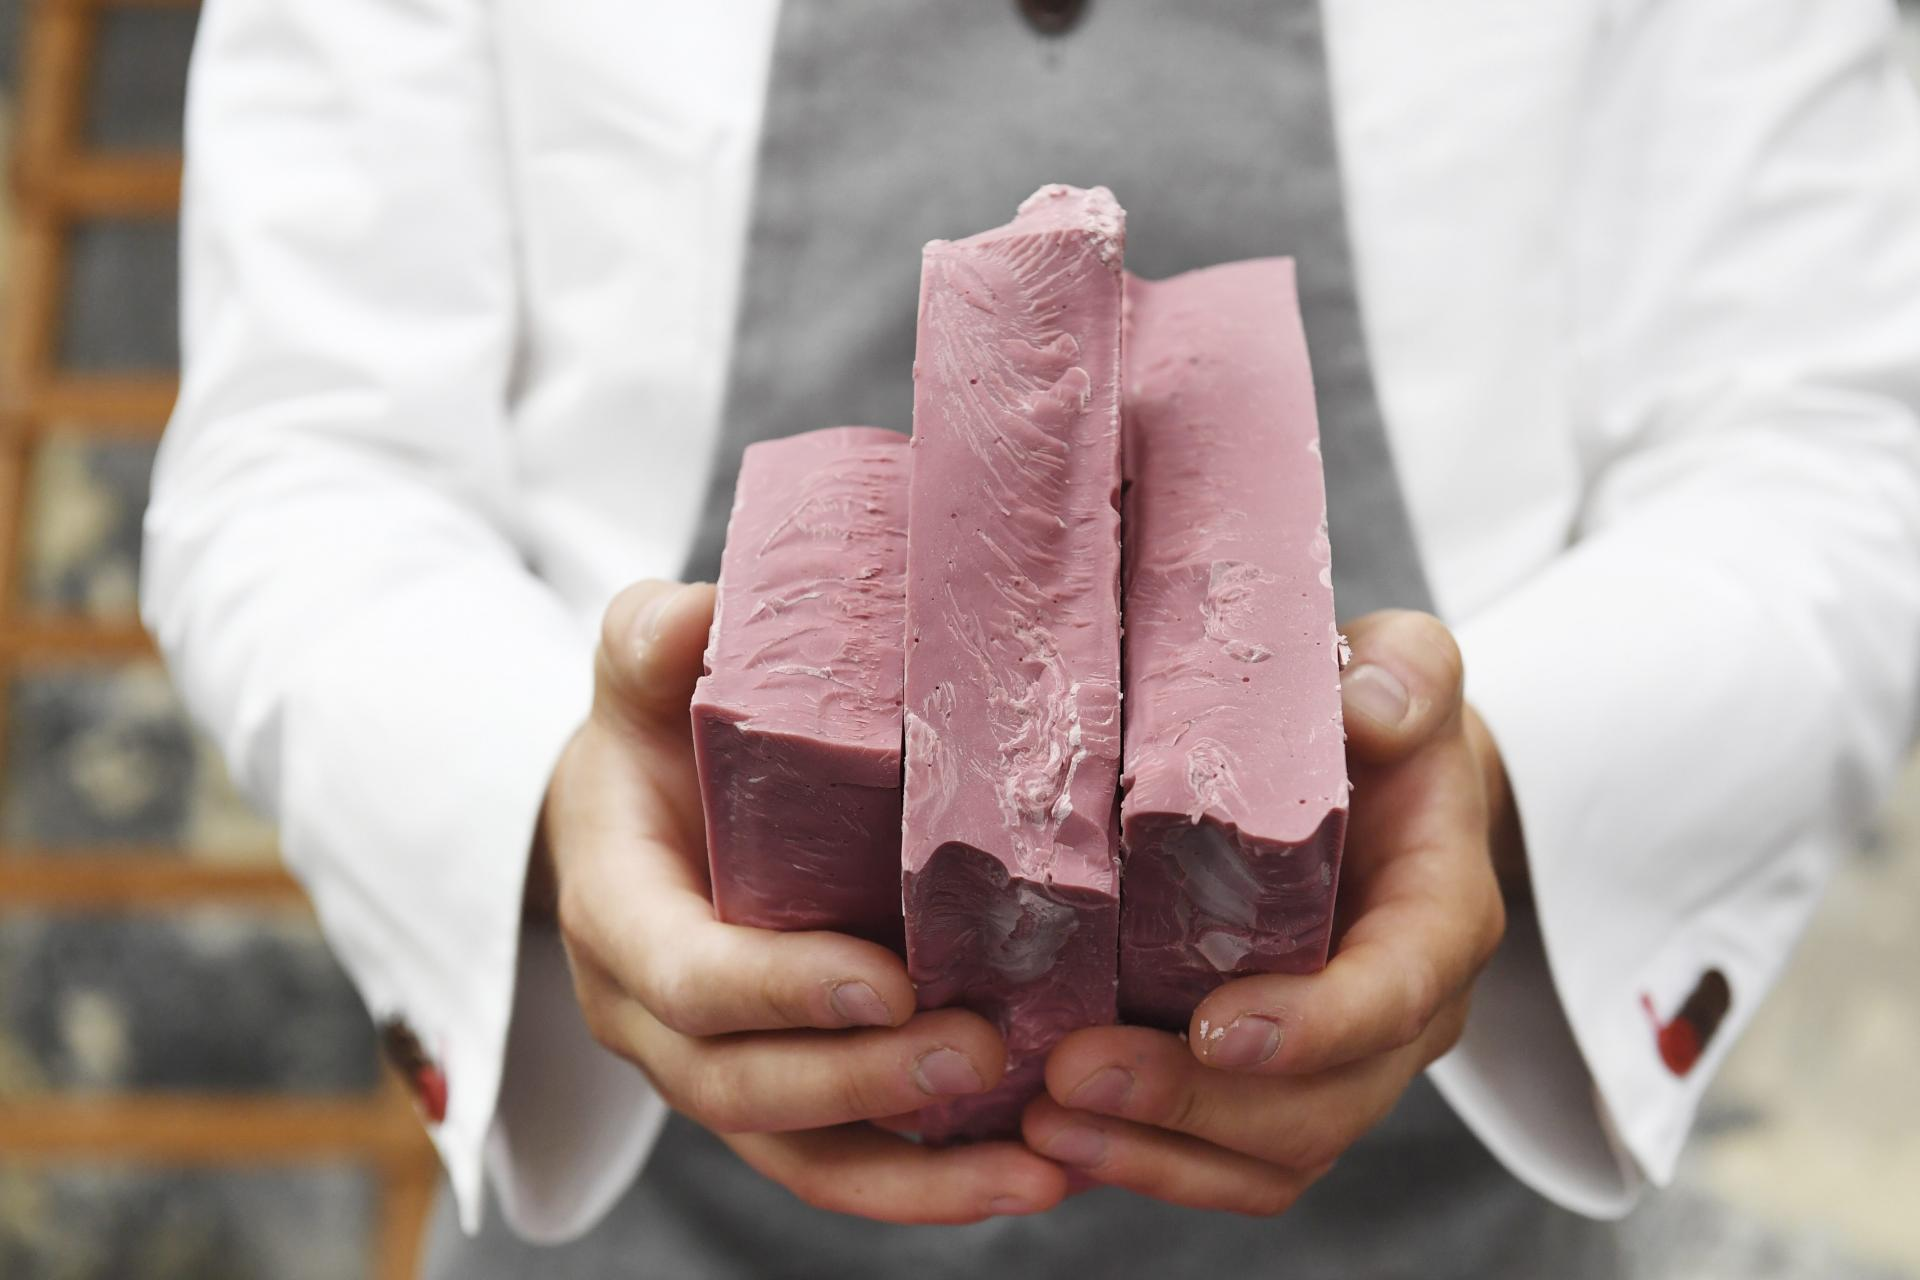 Barry Callebaut reveals the fourth type in chocolate: Ruby